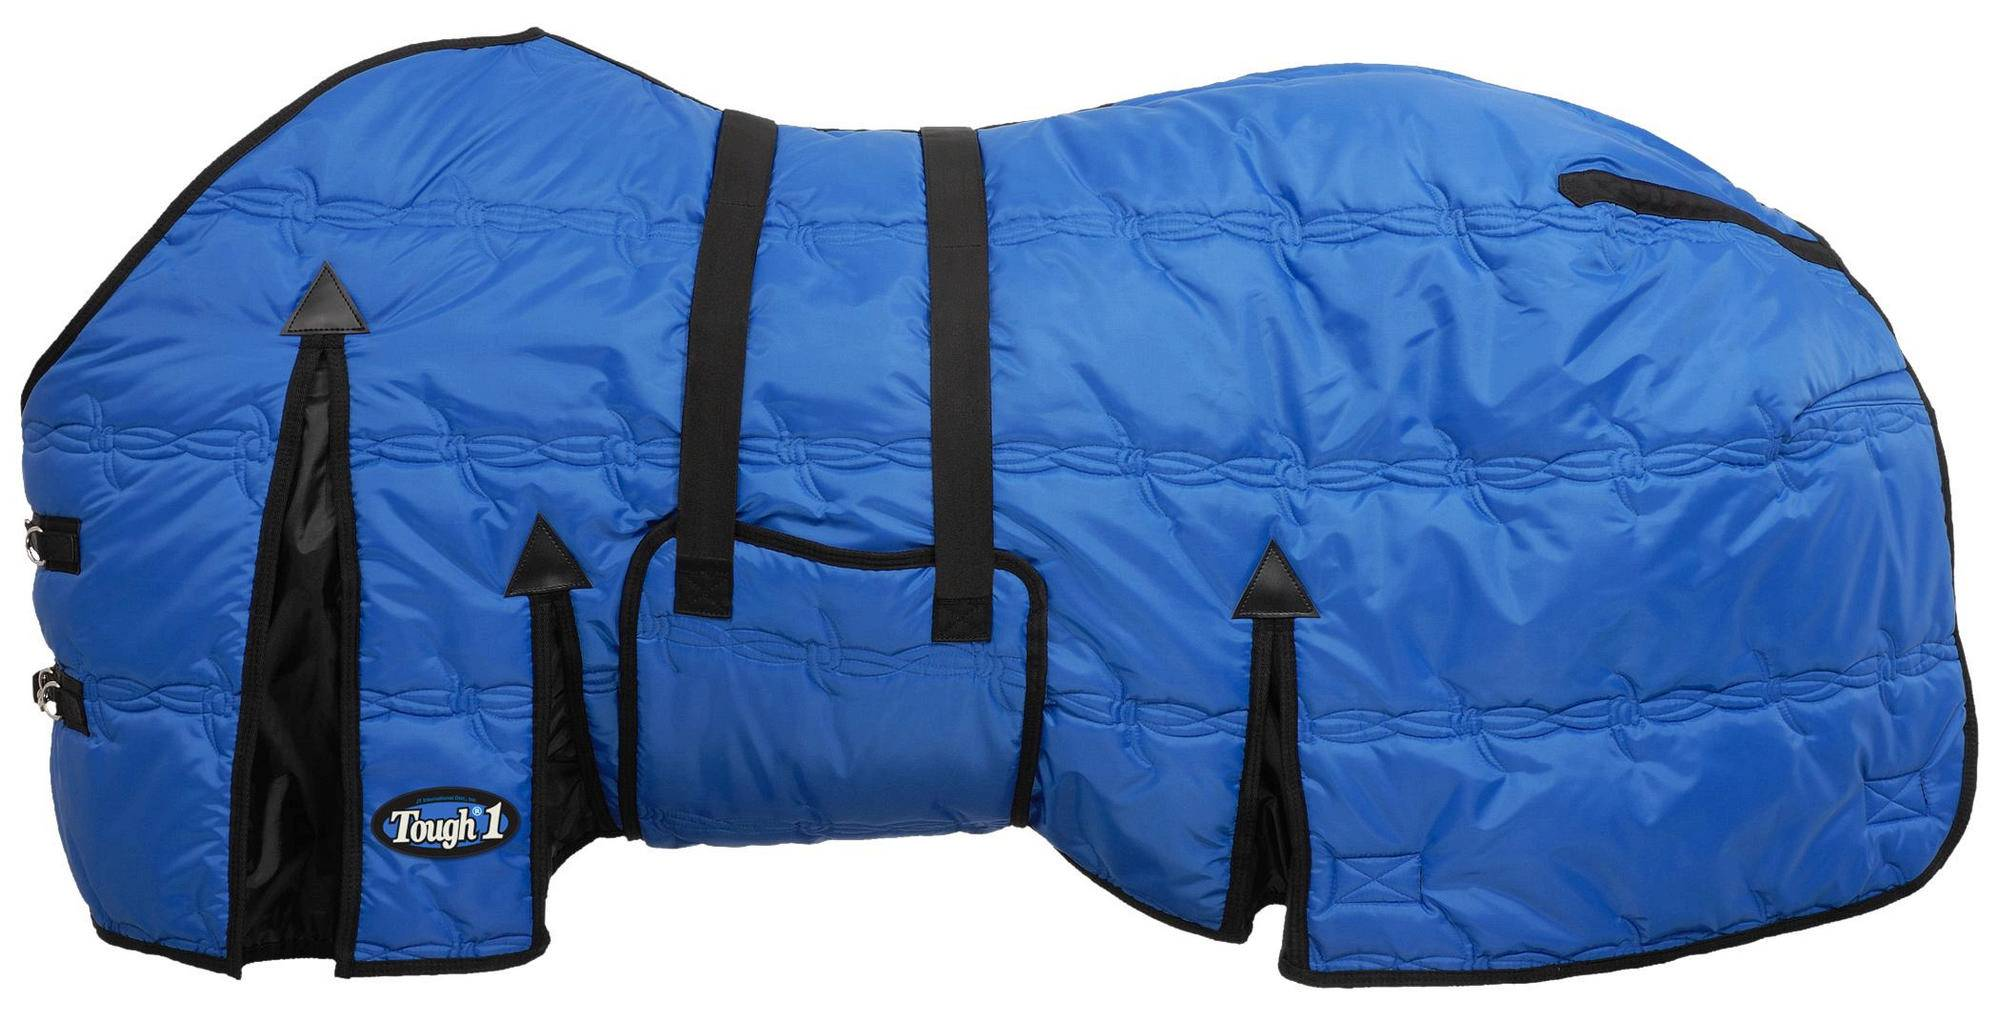 Tough-1 600D Stable Blanket with Belly Wrap